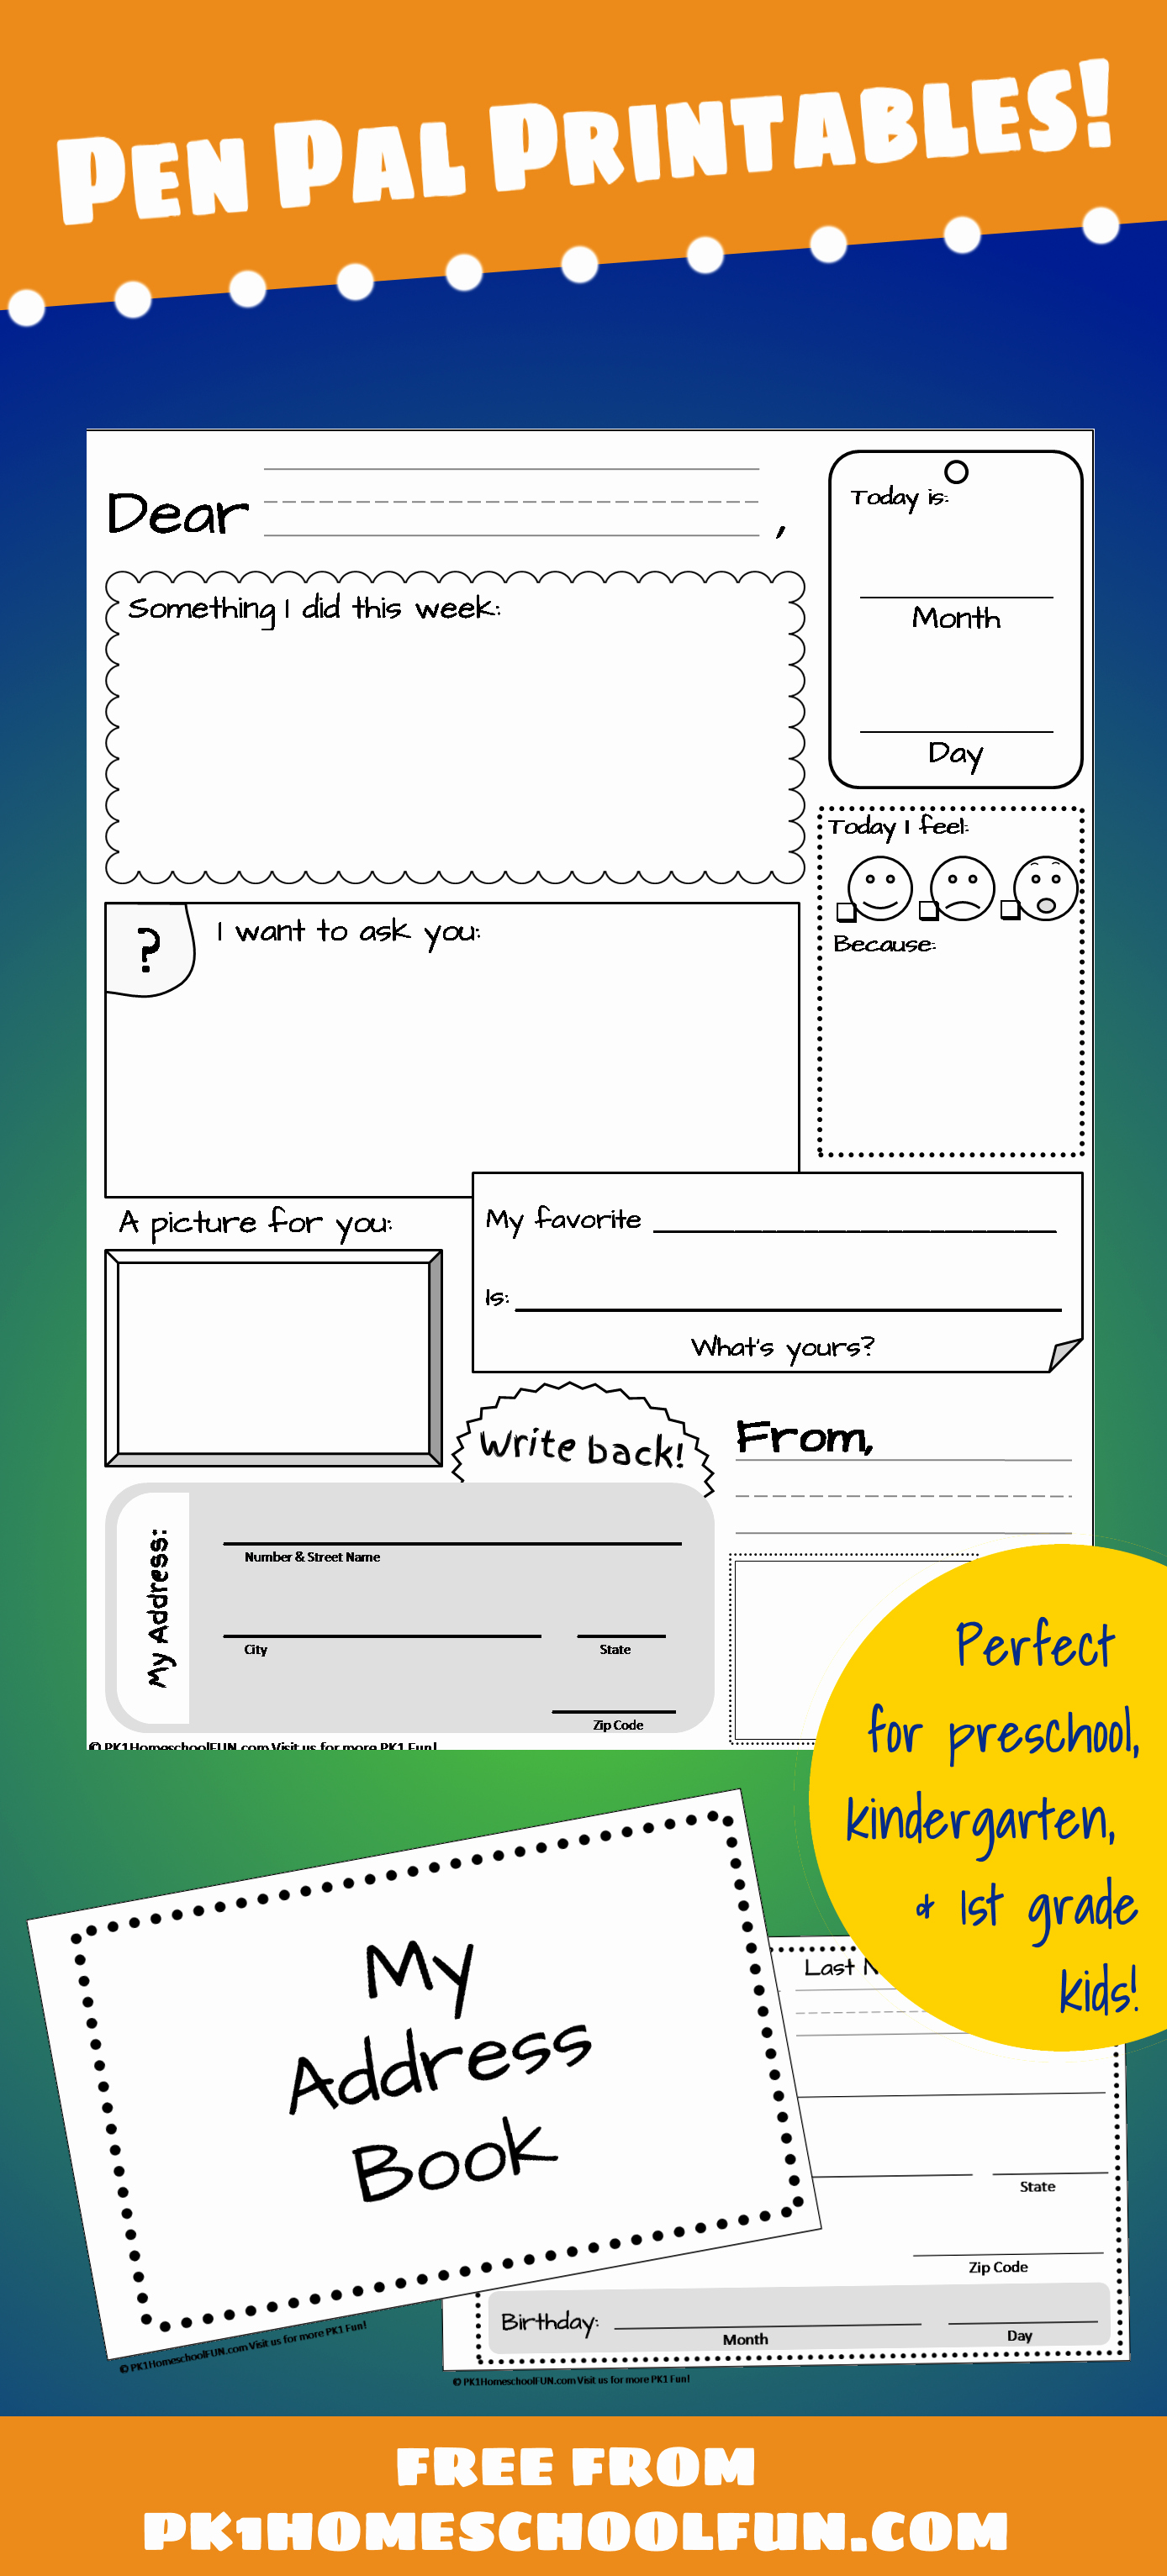 Pen Pal Letter Template Beautiful Free Pen Pal Printables